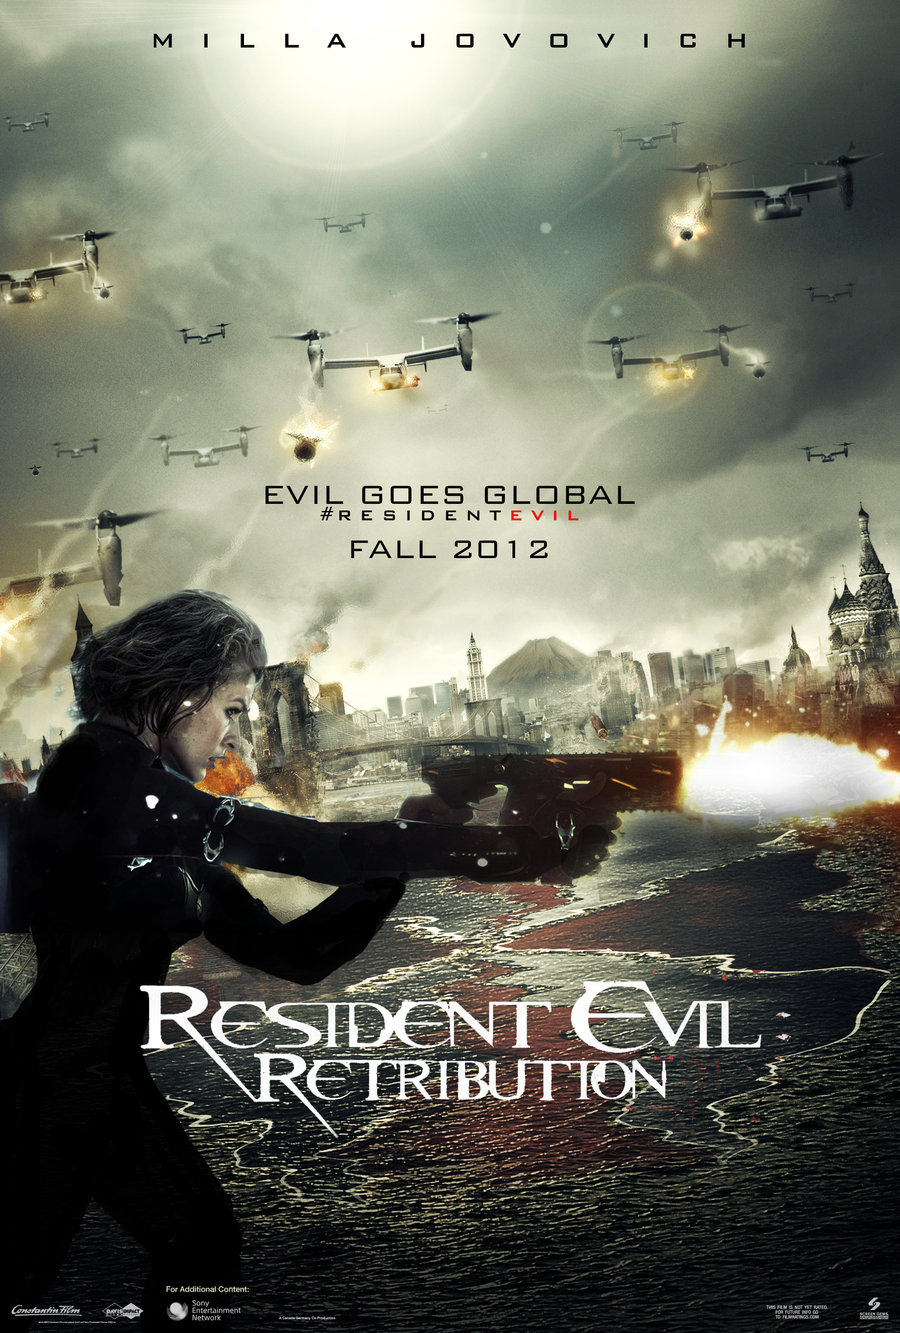 Resident Evil Retribution Poster And Wallpaper 2 A Legally Black